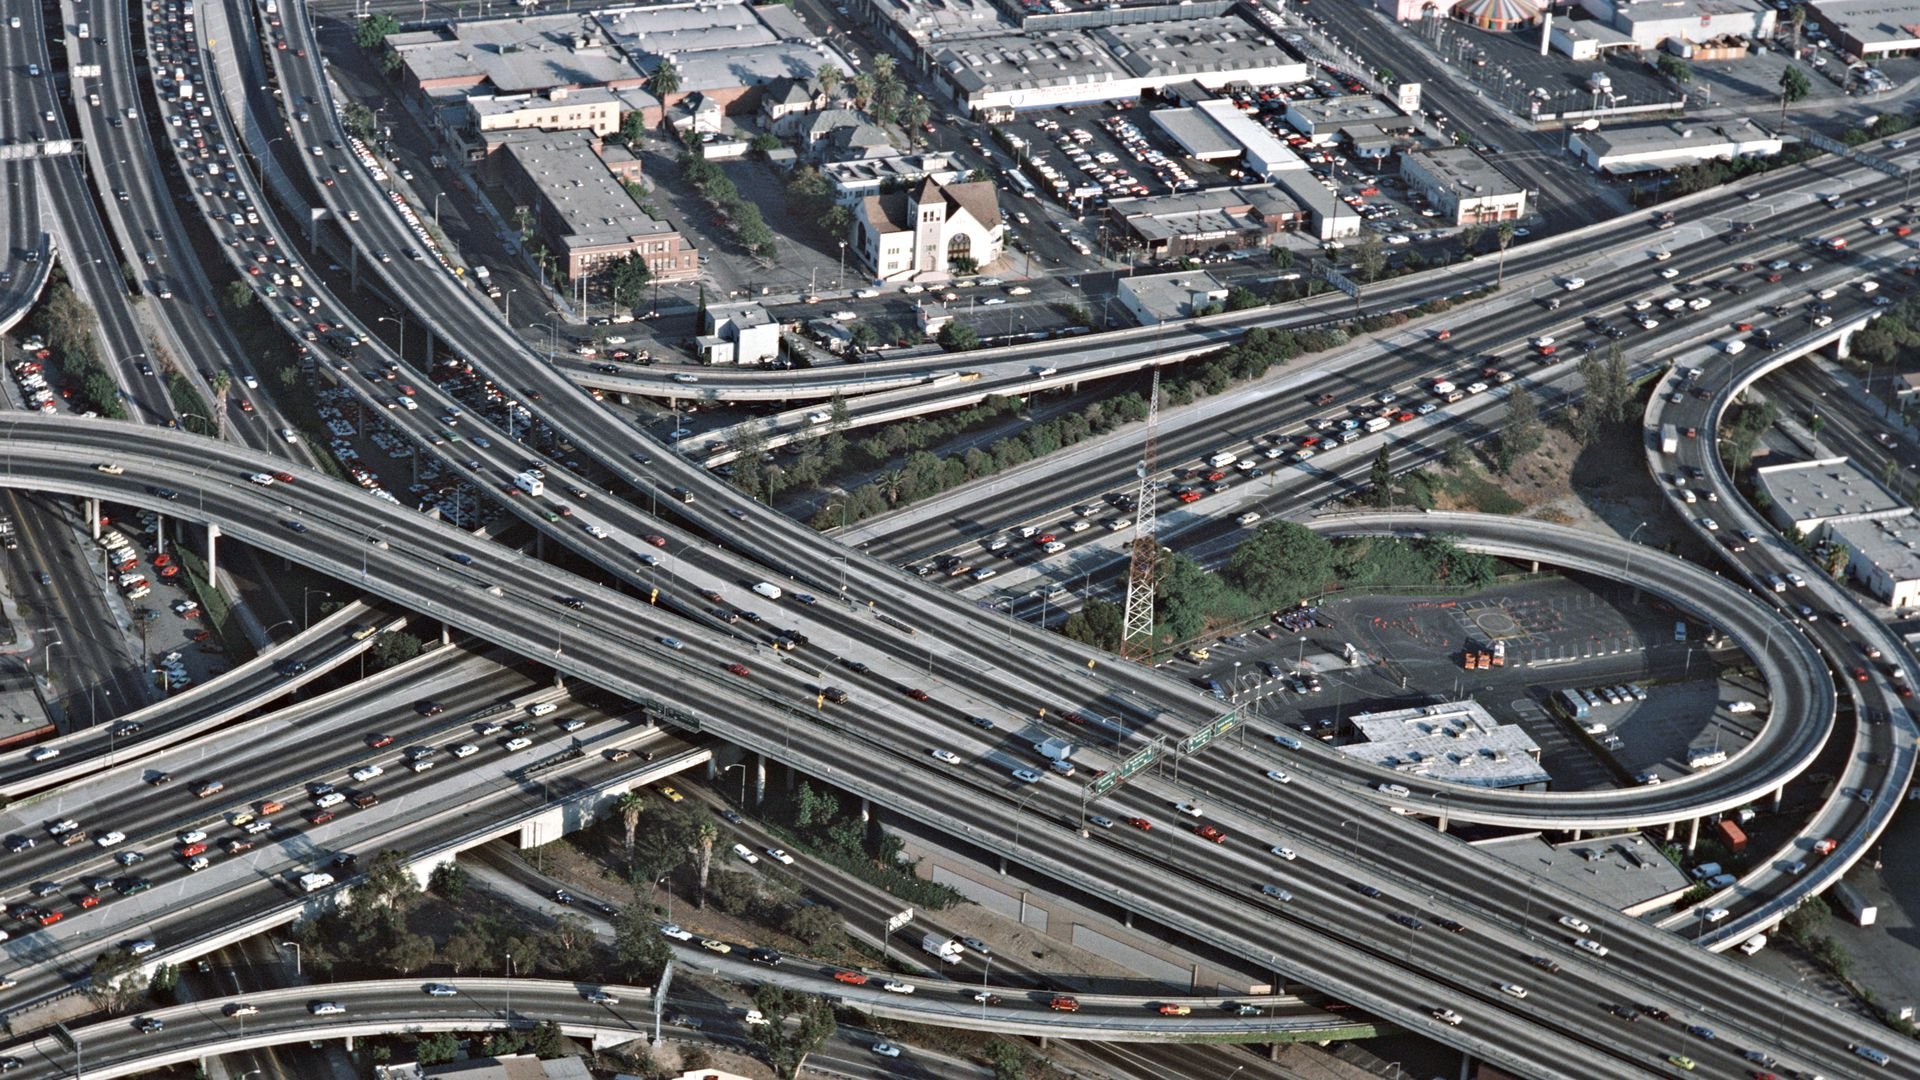 An aerial view of the freeways in Los Angeles